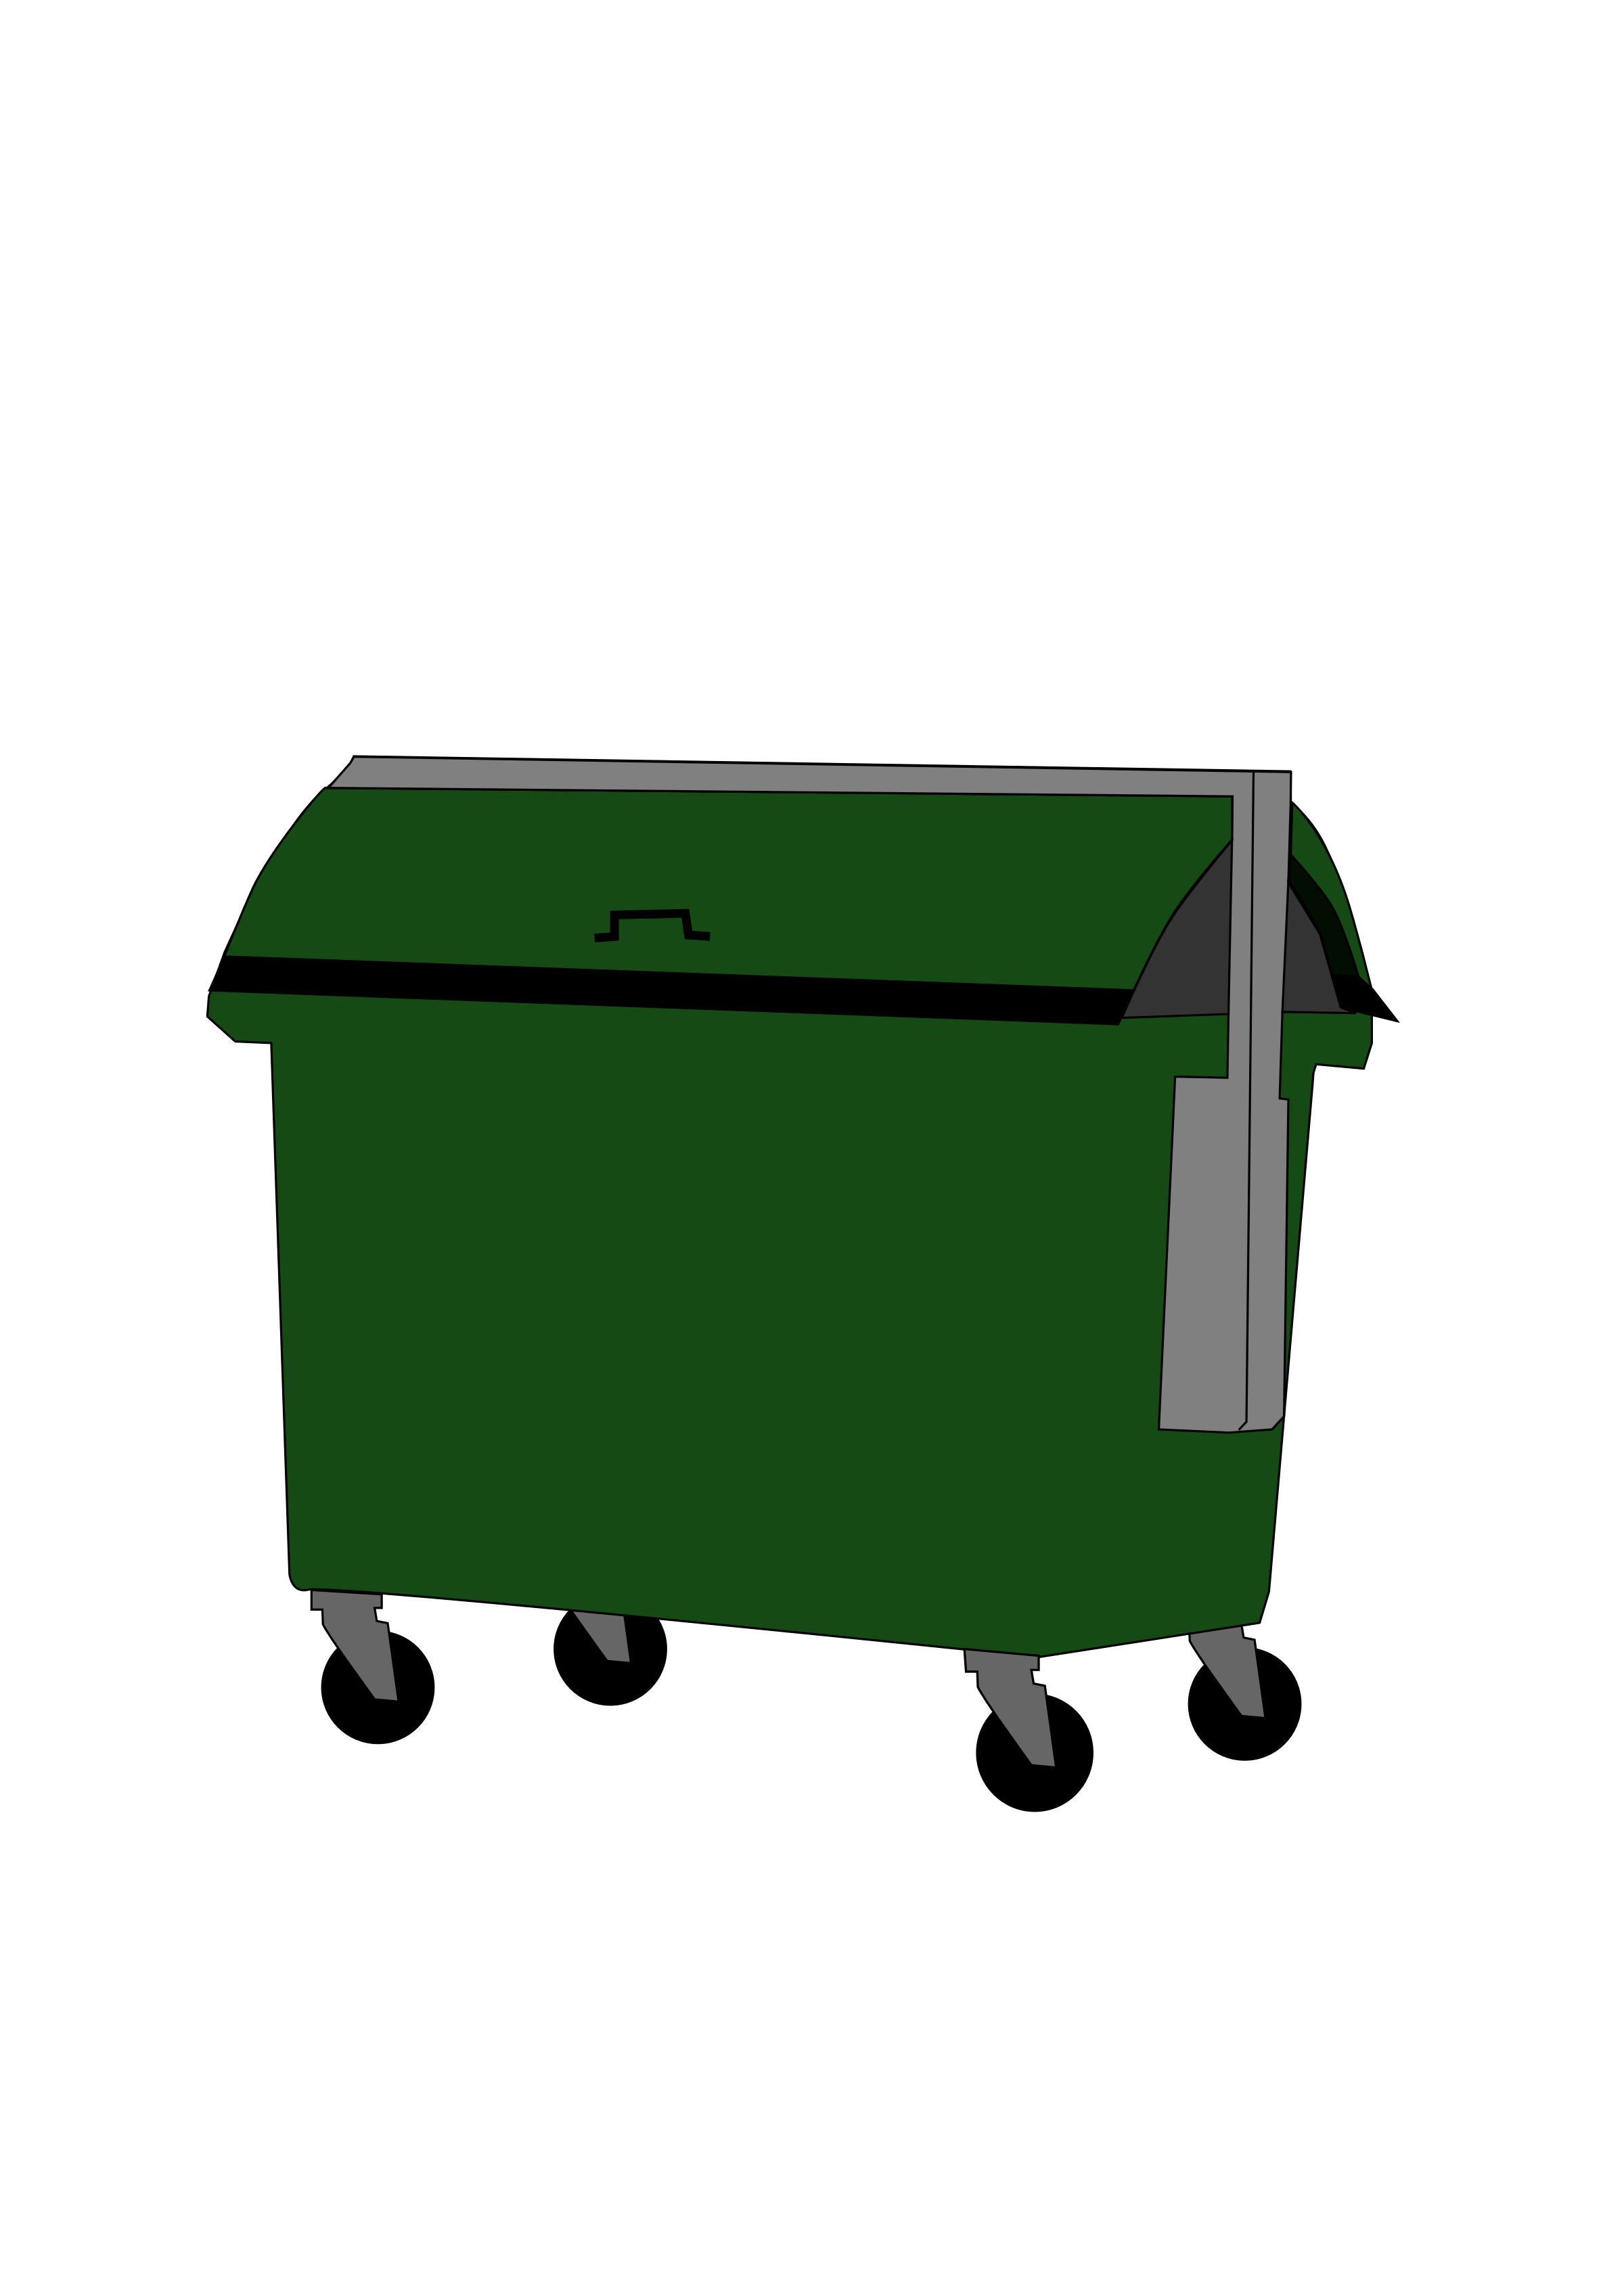 Trash container by skurian25